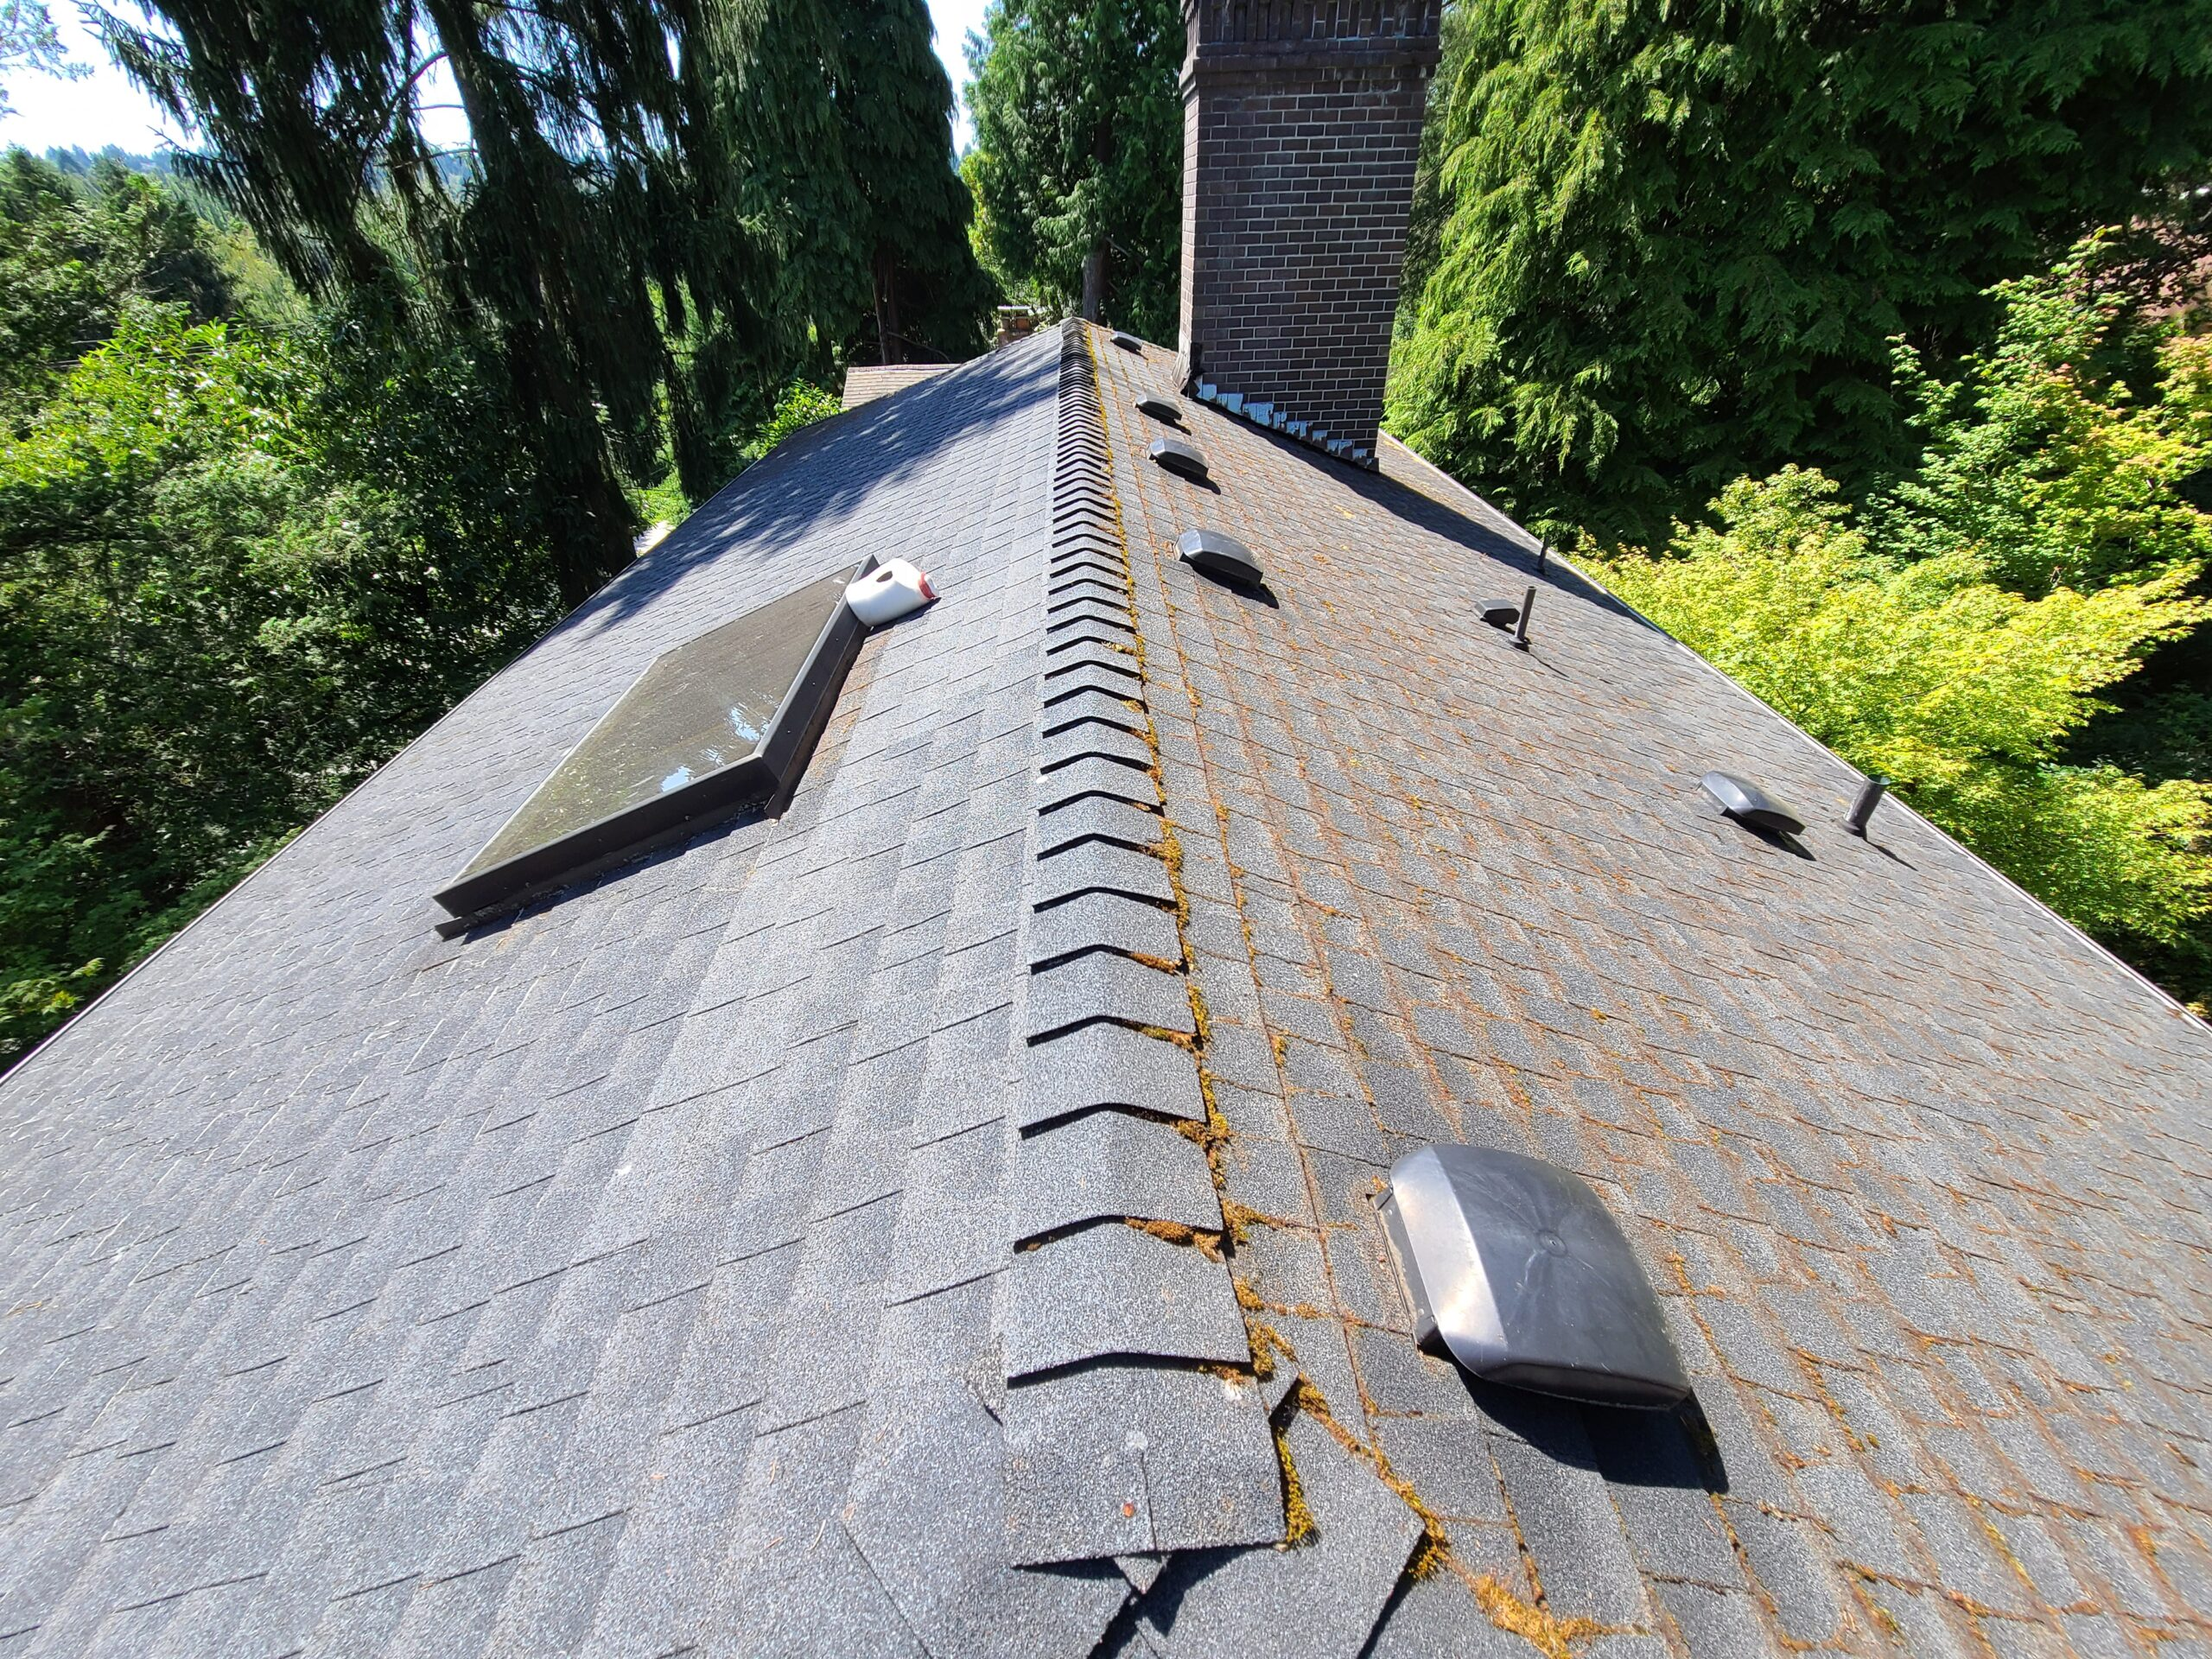 Roof Scraping Treatment Simple Joys Roof Window Gutter Dryer Vent Cleaning